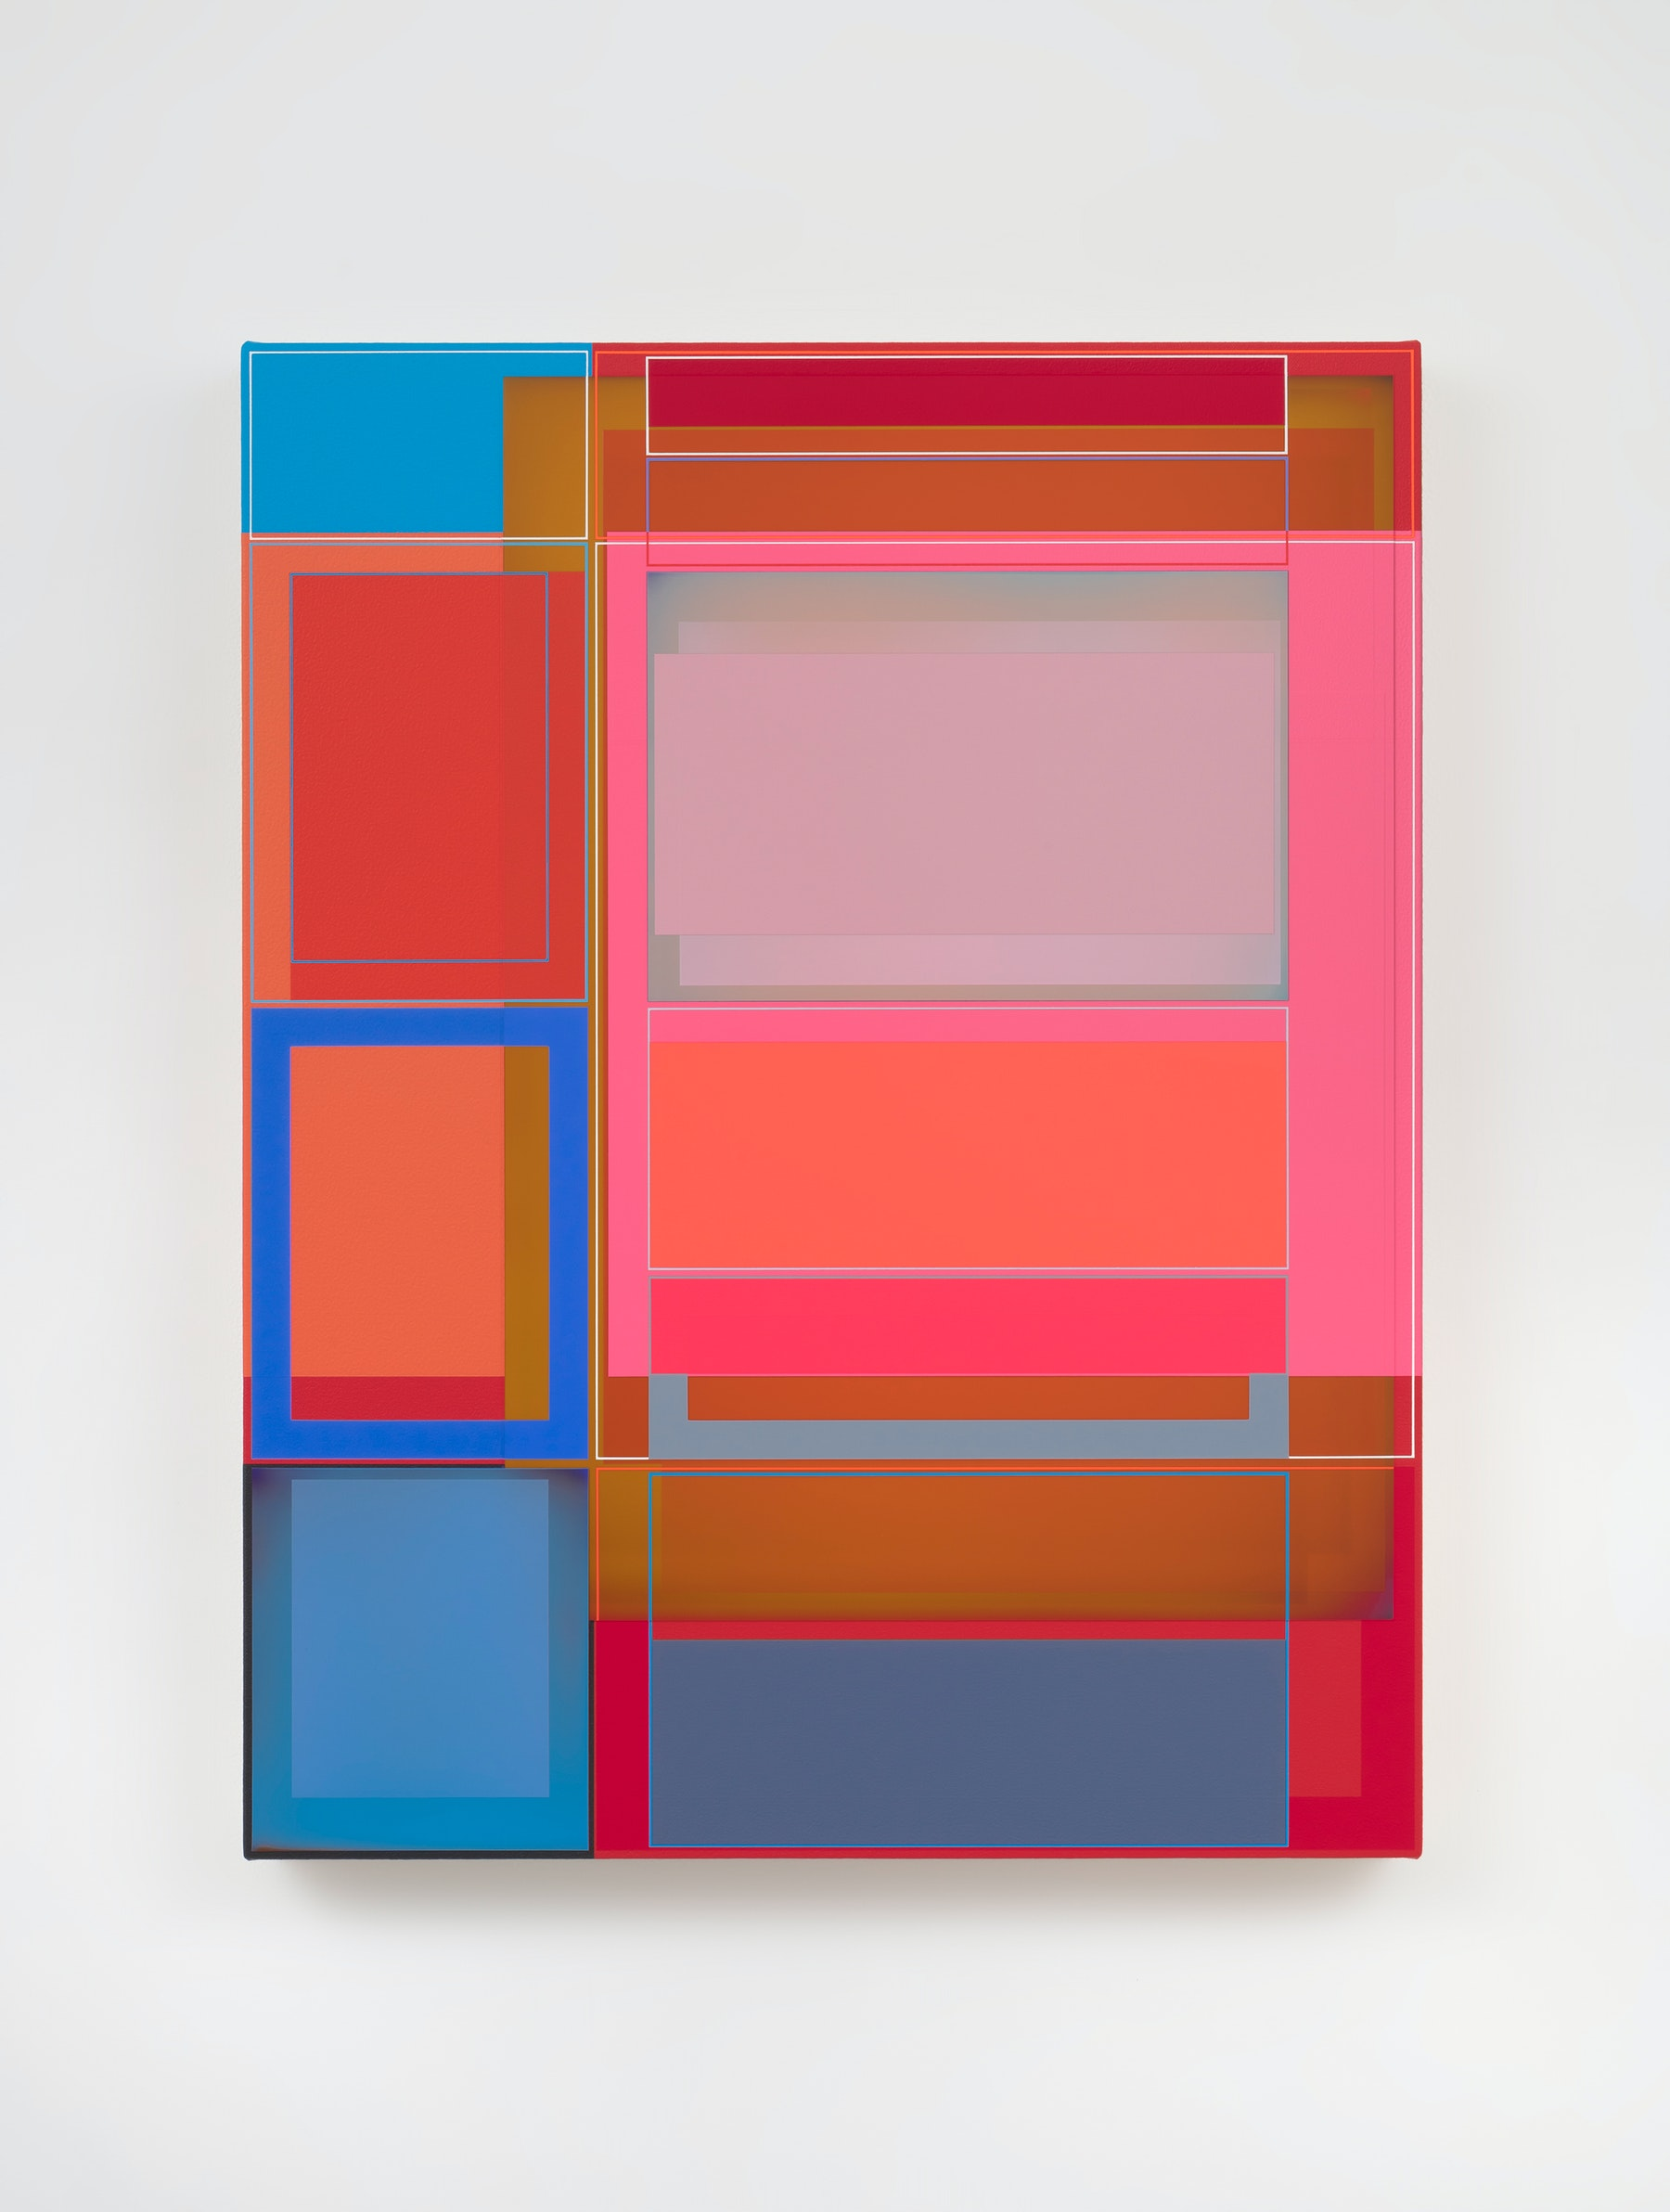 """Patrick Wilson """"Disrupted Grid (Truth),"""" 2021 Acrylic on canvas 27"""" x 21"""" [HxW] (68.58 x 53.34 cm) Inventory #WIL593 Courtesy of the artist and Vielmetter Los Angeles Photo credit: Robert Wedemeyer"""